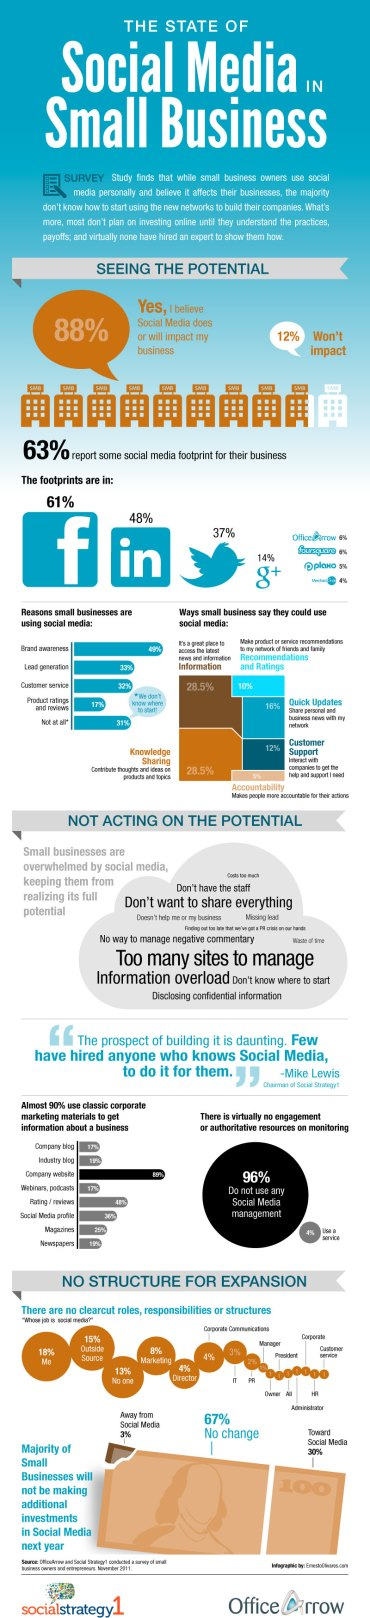 Small-Business-Social-Media-Infographic